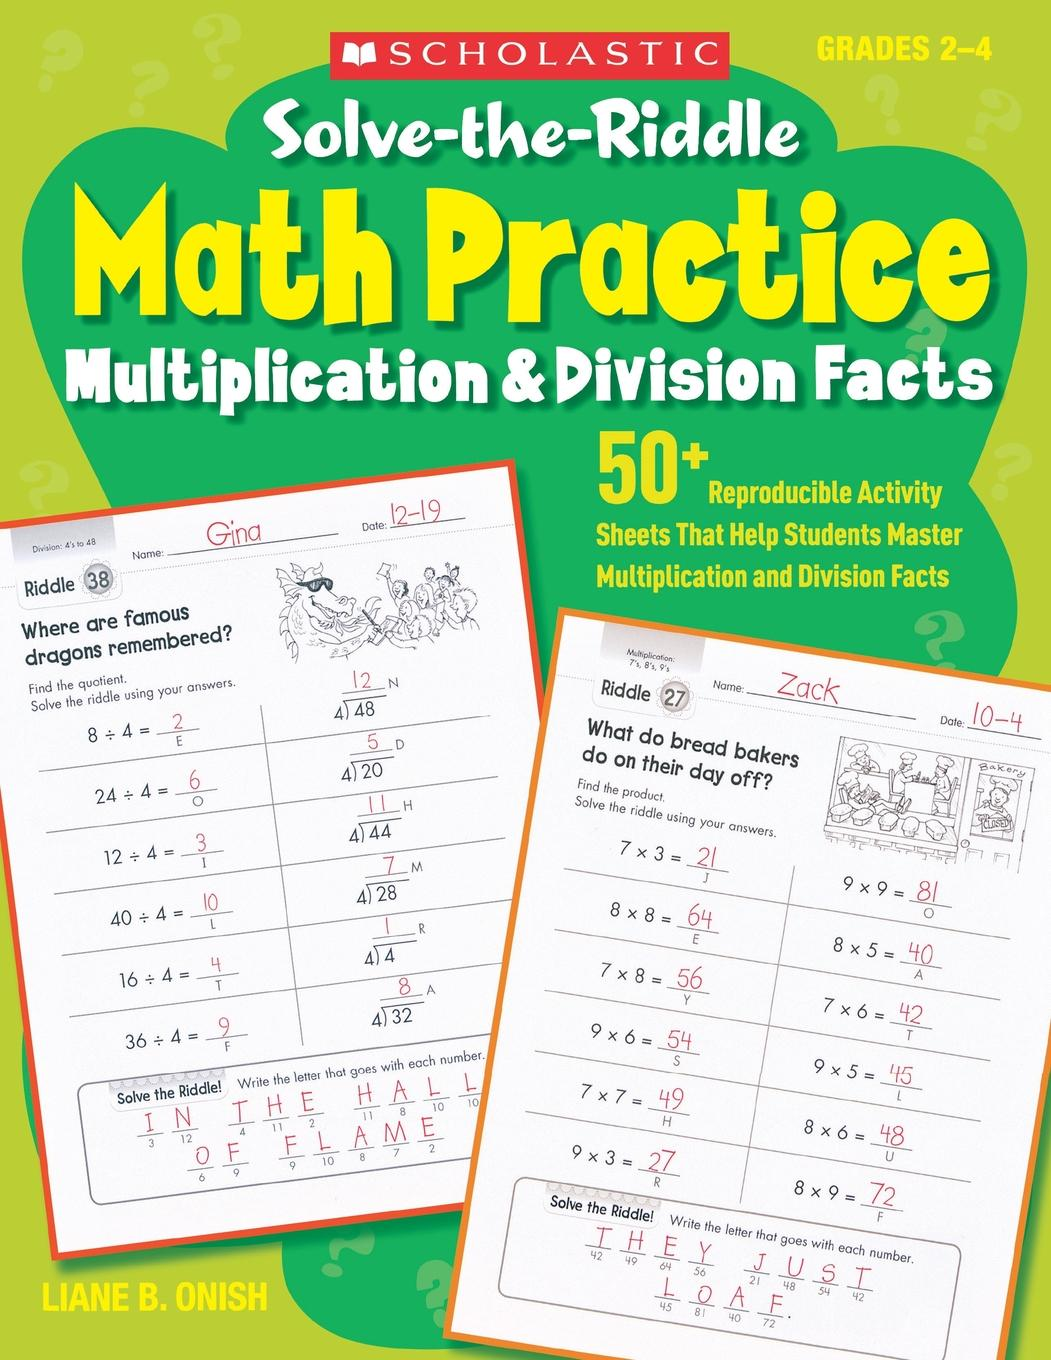 Solve The Riddle Math Practice Grades 2 4 Multiplication